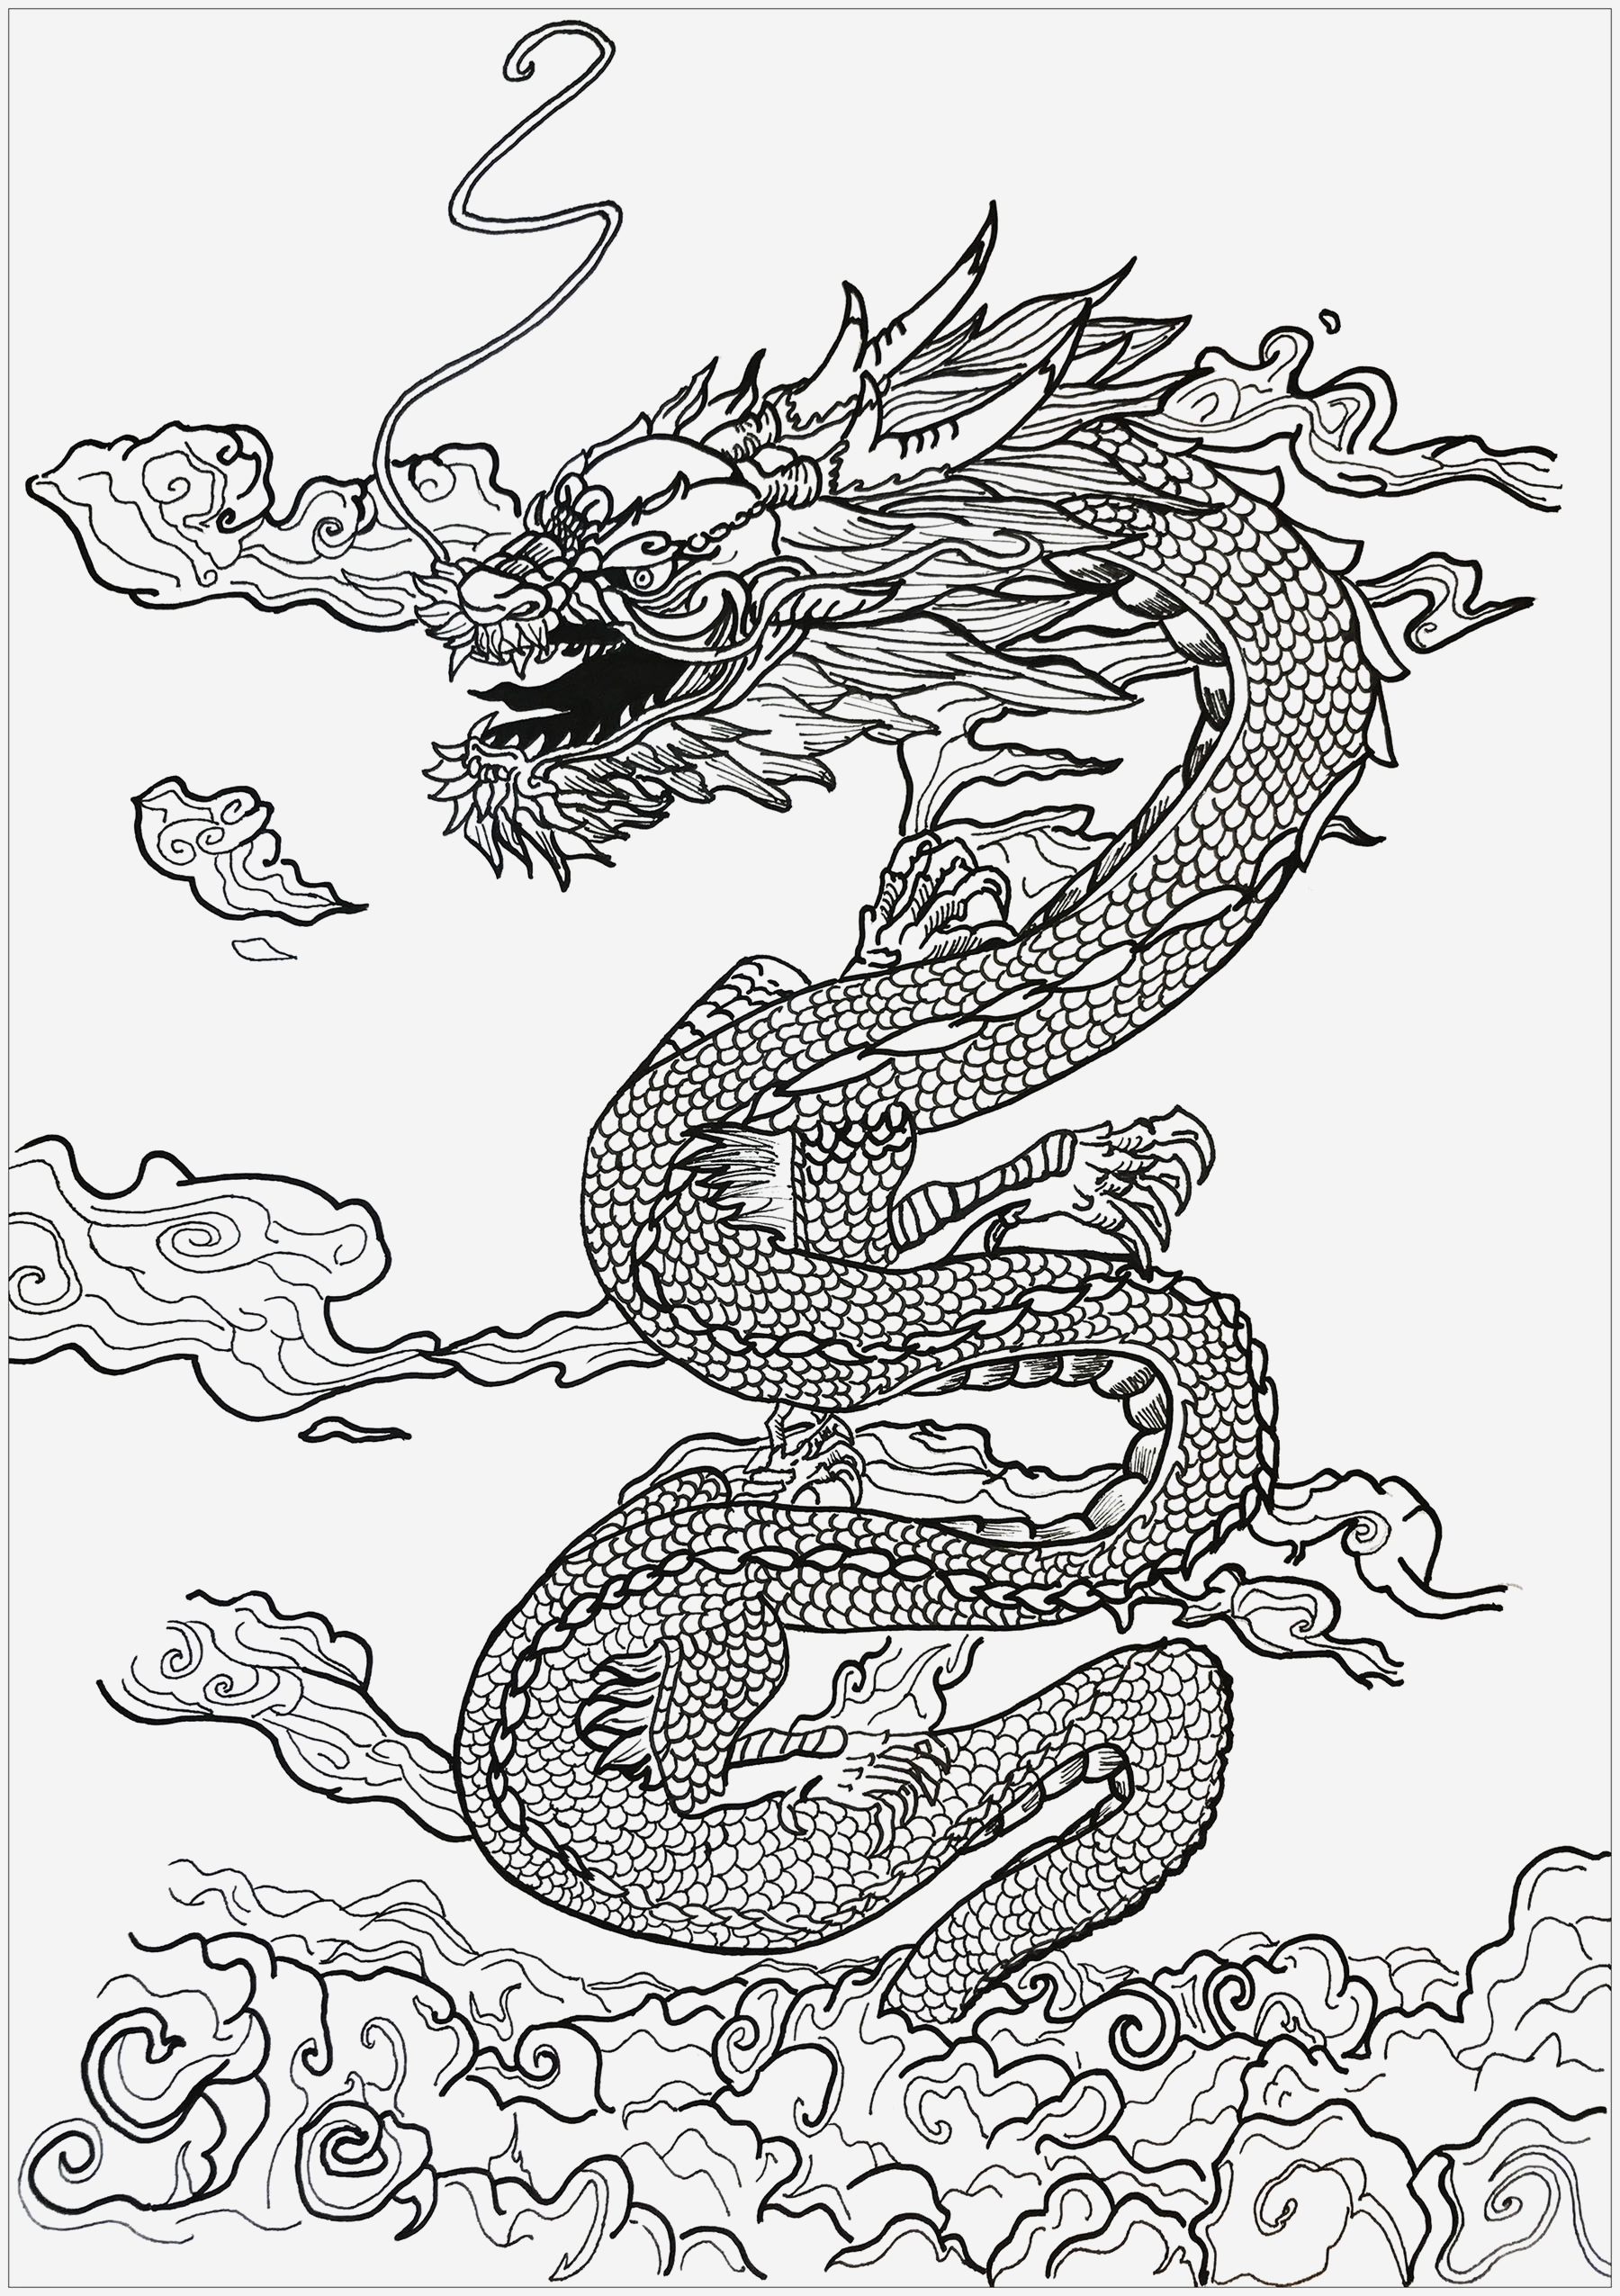 Coloriage Dragon Chinois Inspirational Plexe Dragon Inspiration asiatique Dragons Coloriages Of Coloriage Dragon Chinois